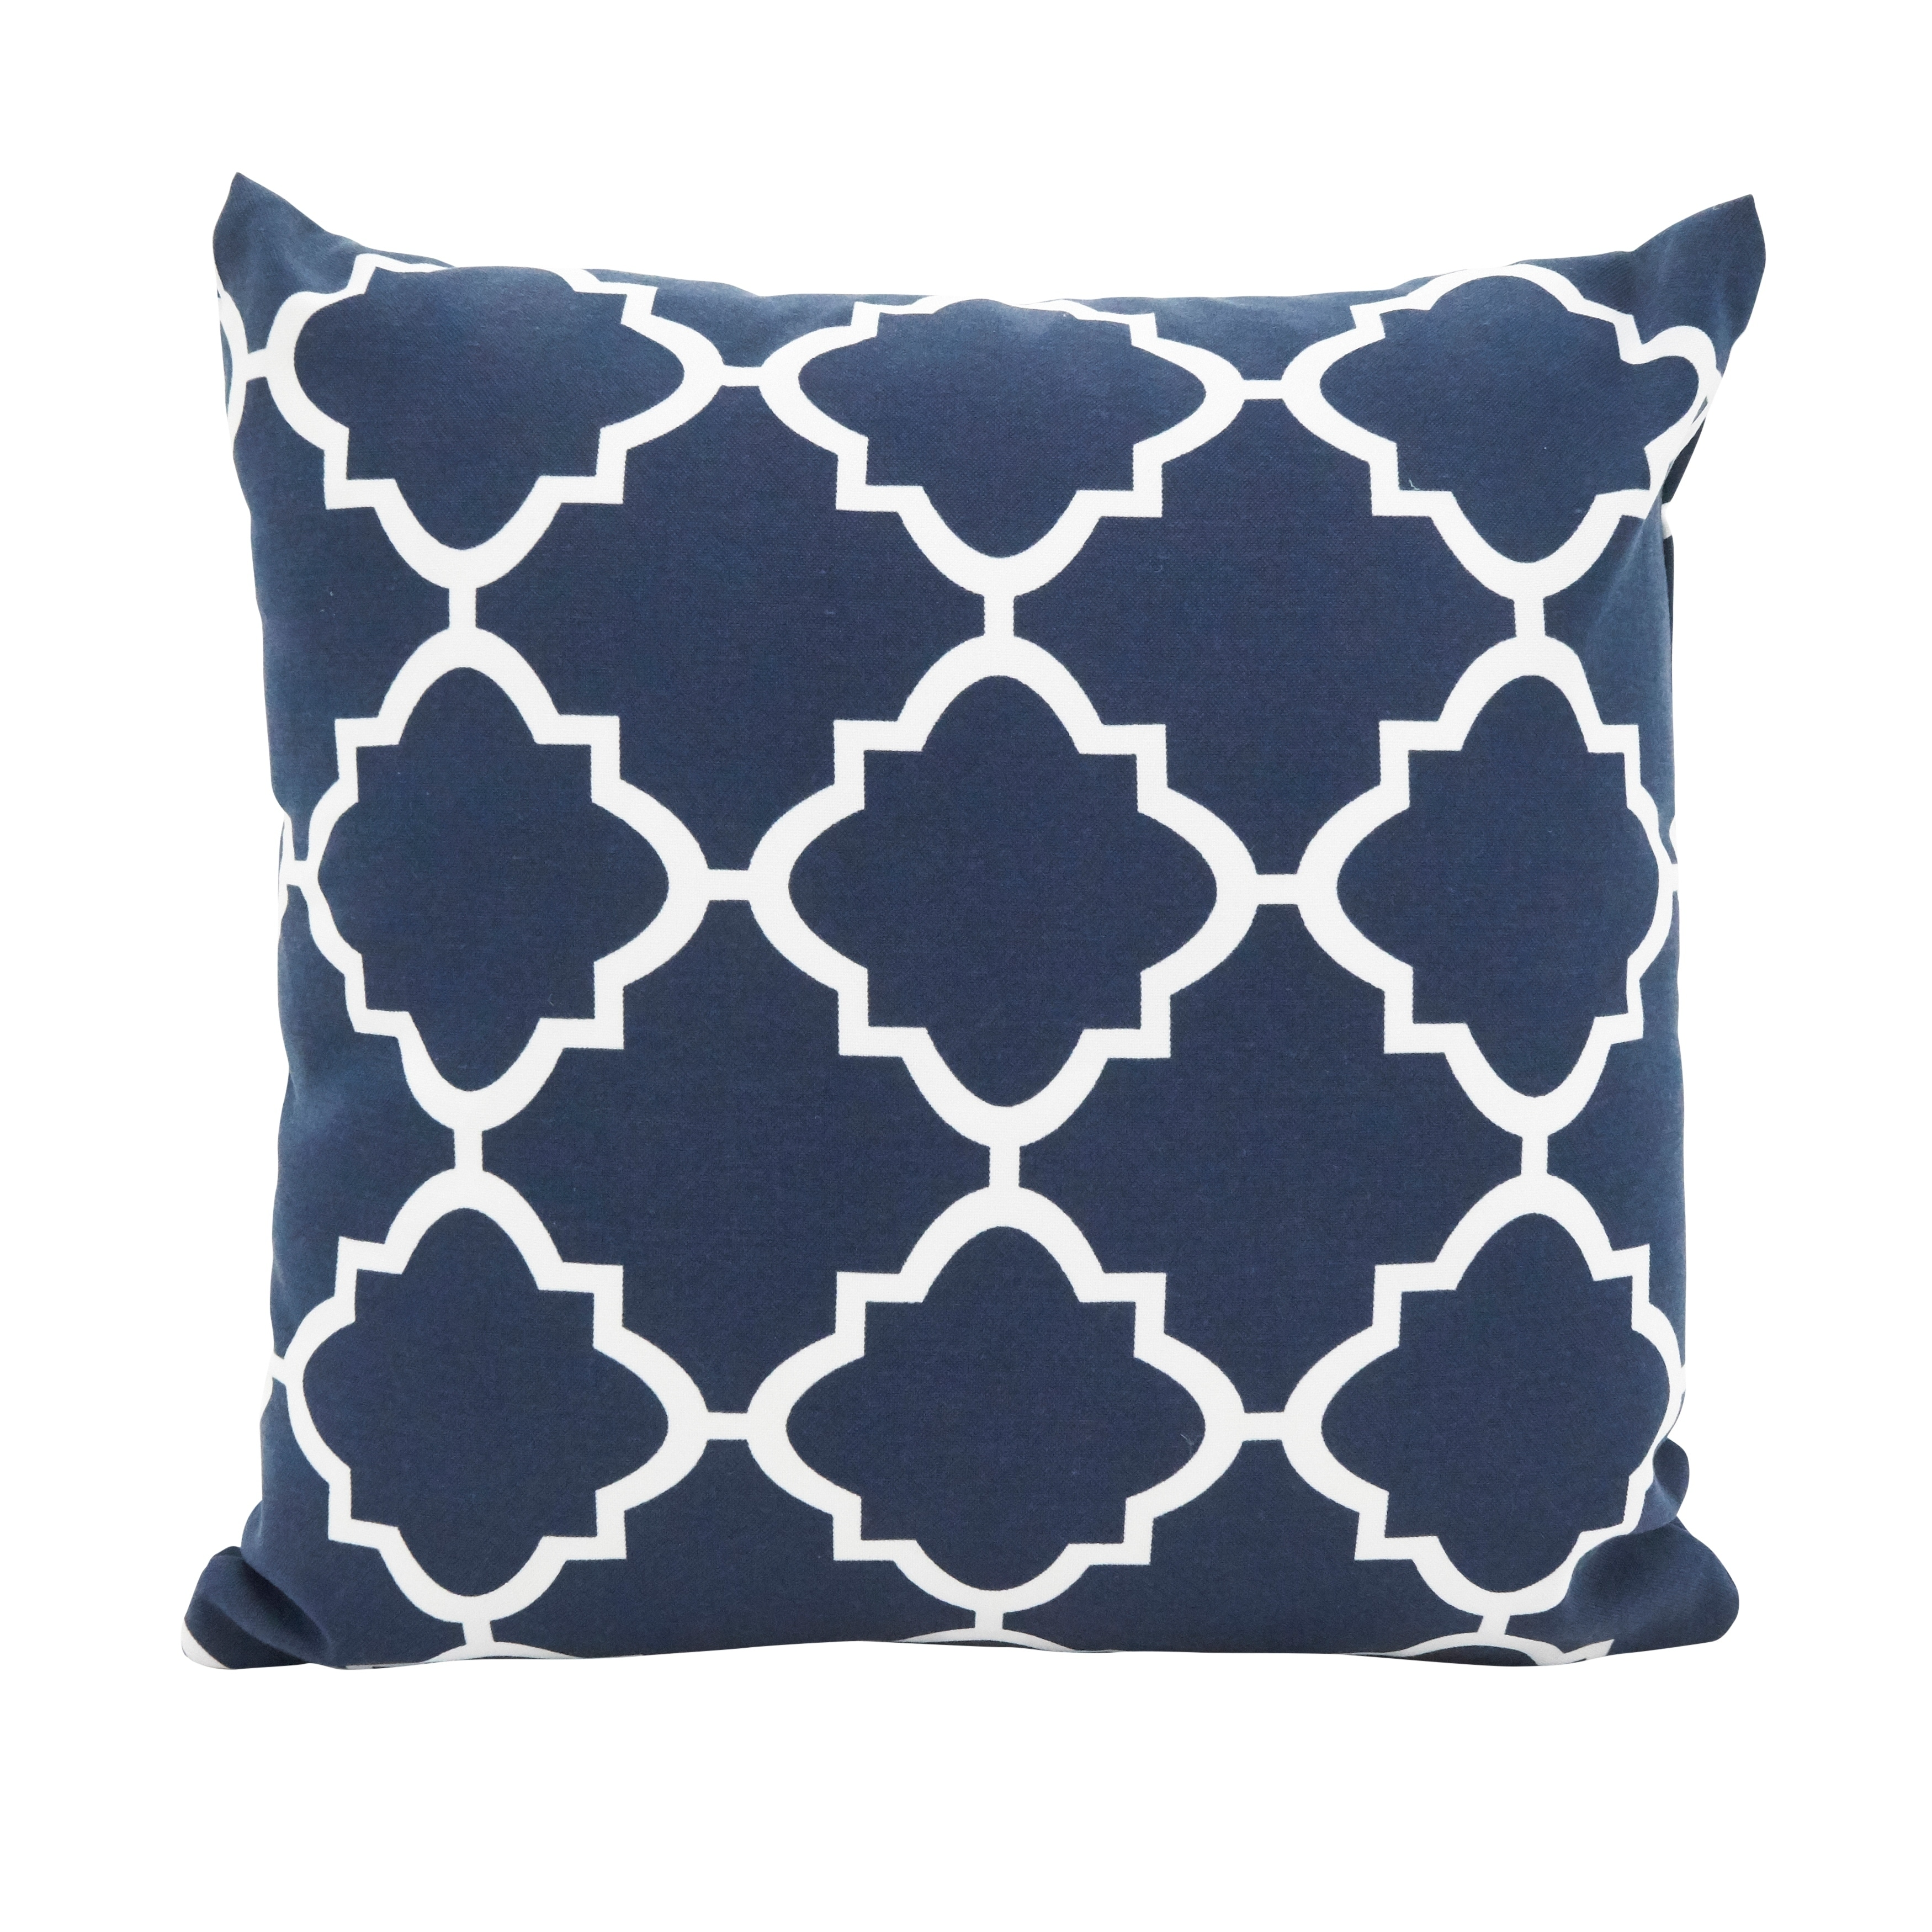 Moroccan Tile Poly Filled Throw Pillow Free Shipping On Orders Over 45 26429919